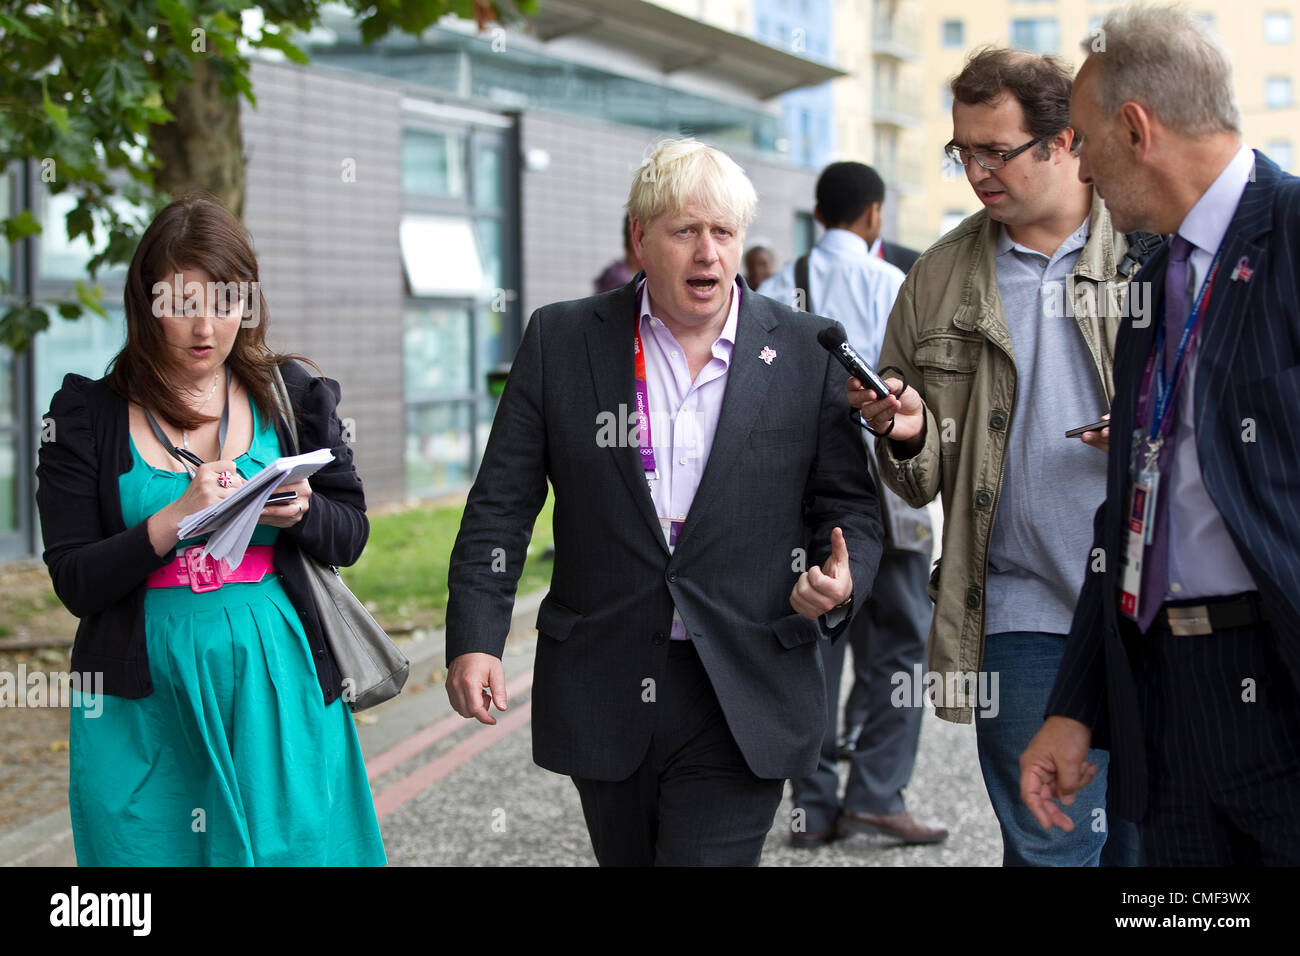 Excel, London, UK. Wednesday 1st August 2012. Boris Johnson, Mayor of London at the Olympic Games 2012 answering Stock Photo